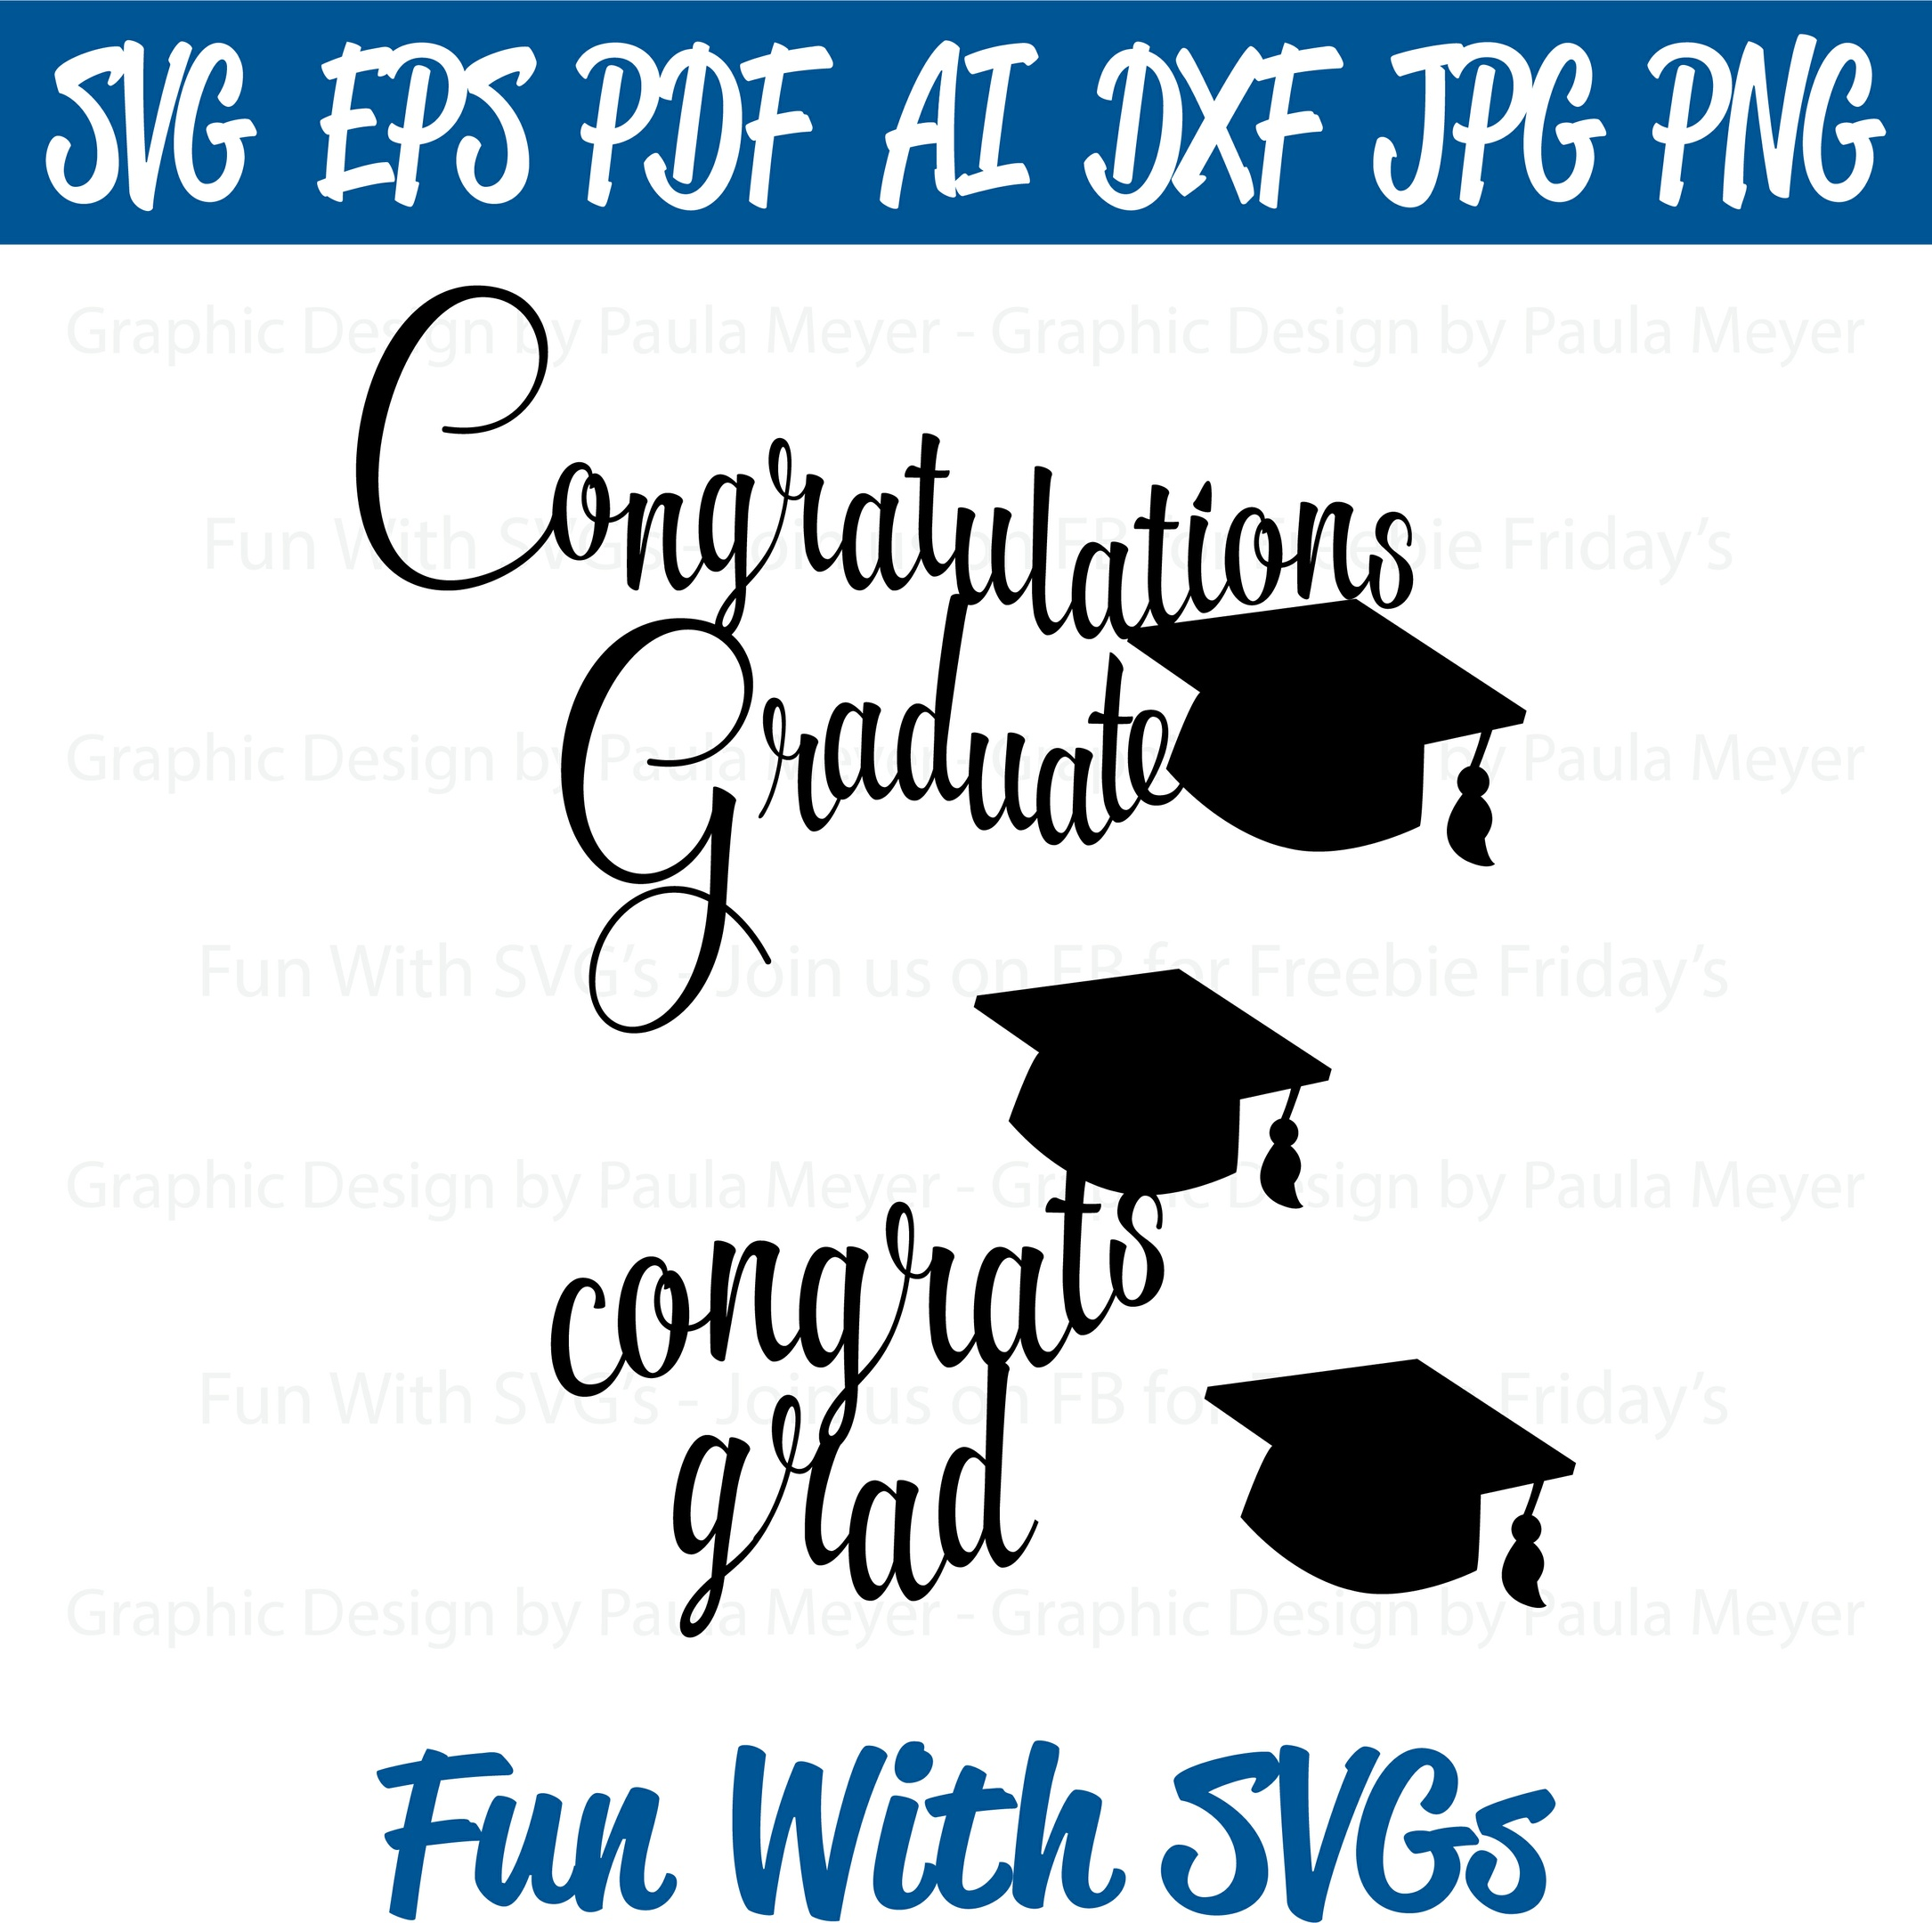 Congratulations Graduate - SVG Cut File, High Resolution Printable Graphics and Editable Vector Art